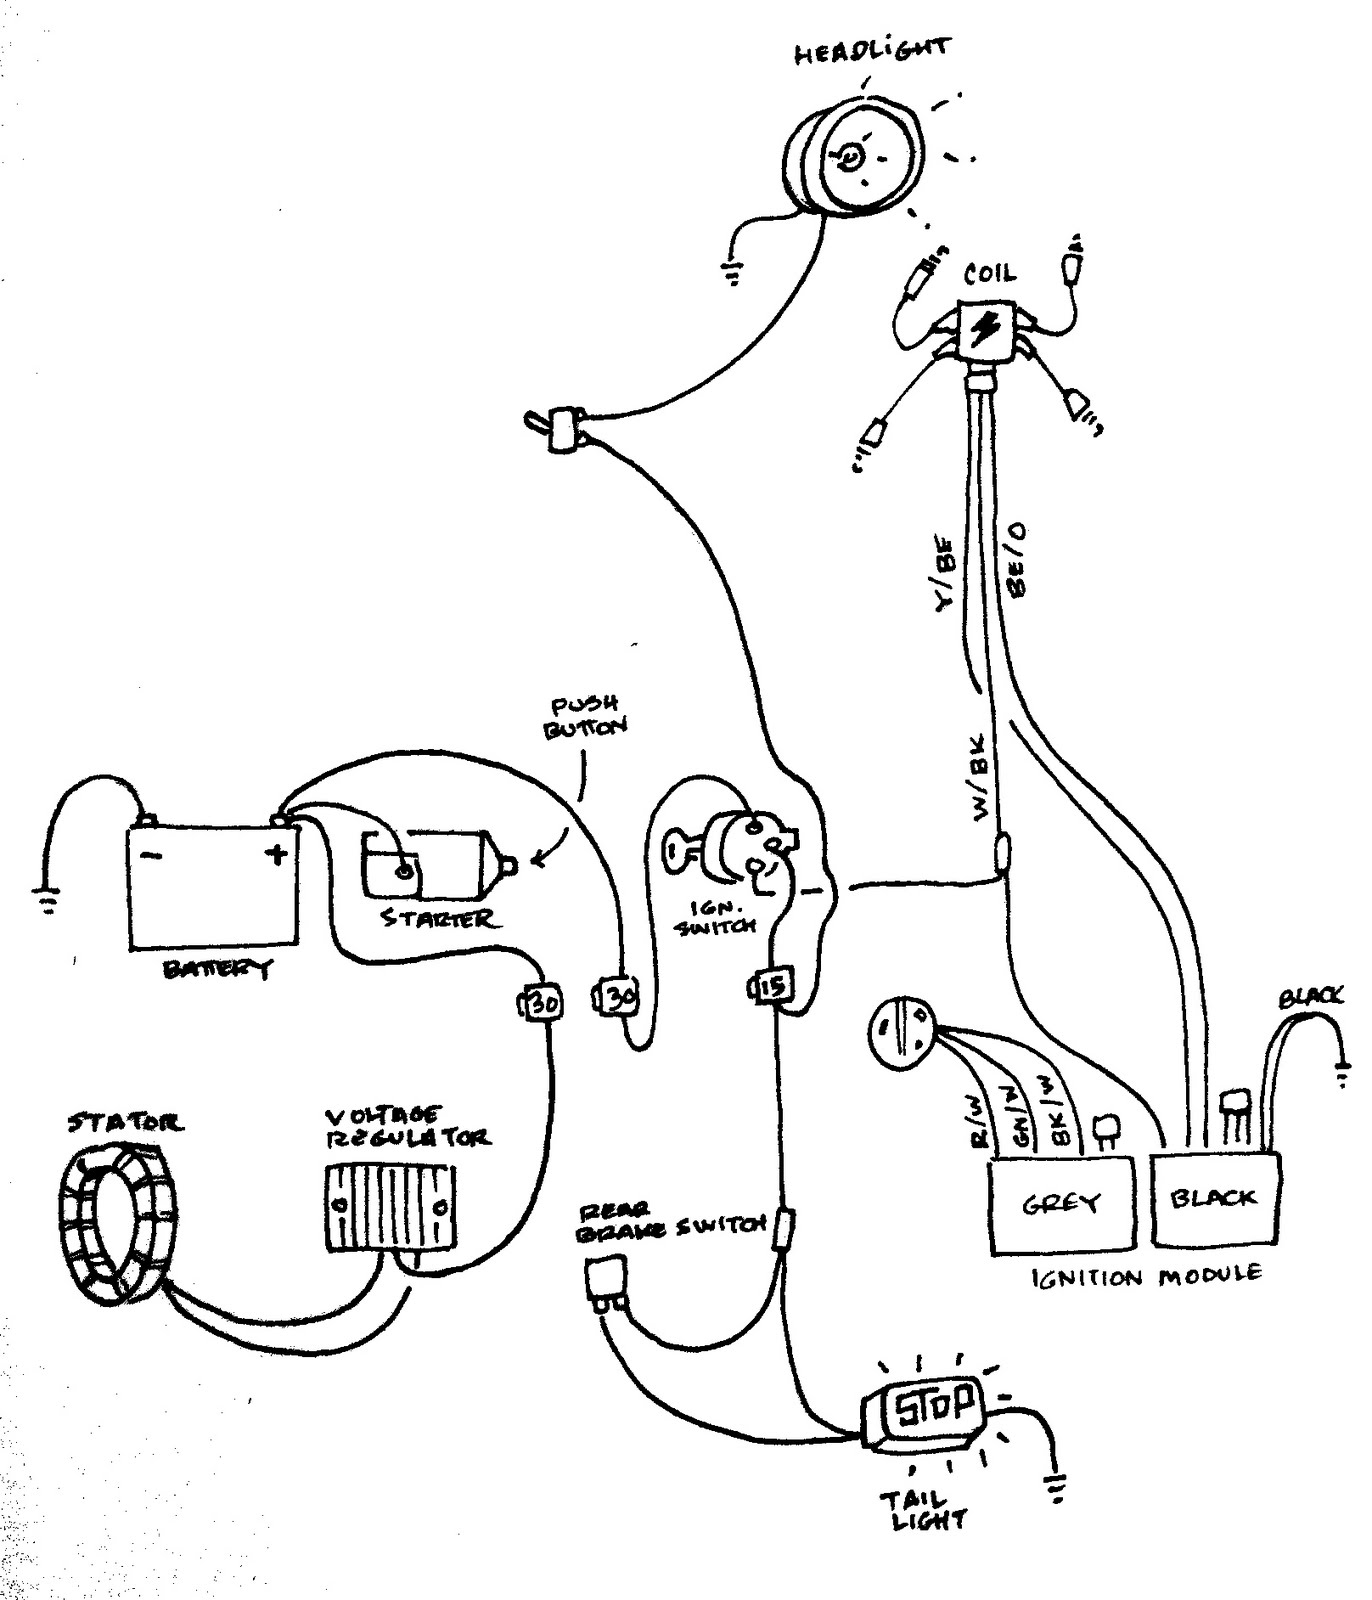 Excellent Chinese Dirt Bike Wiring Diagram Images - Wiring Diagram ...